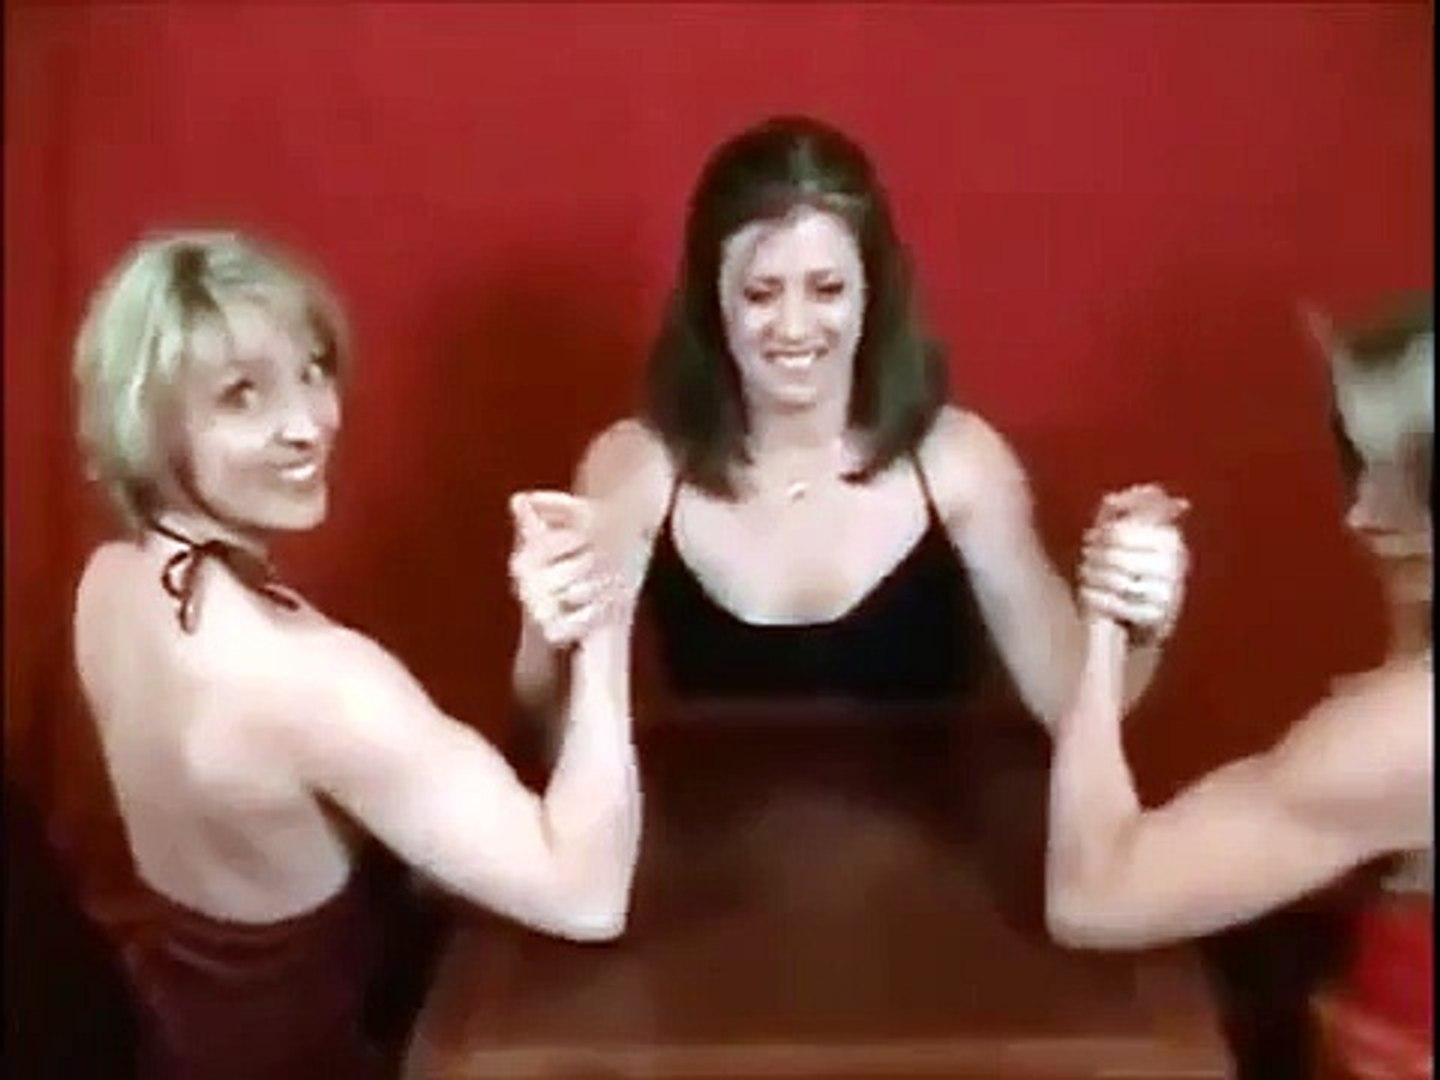 Bodybuilding for women     Armwrestling Challenge   Female fitness models  workouts for women